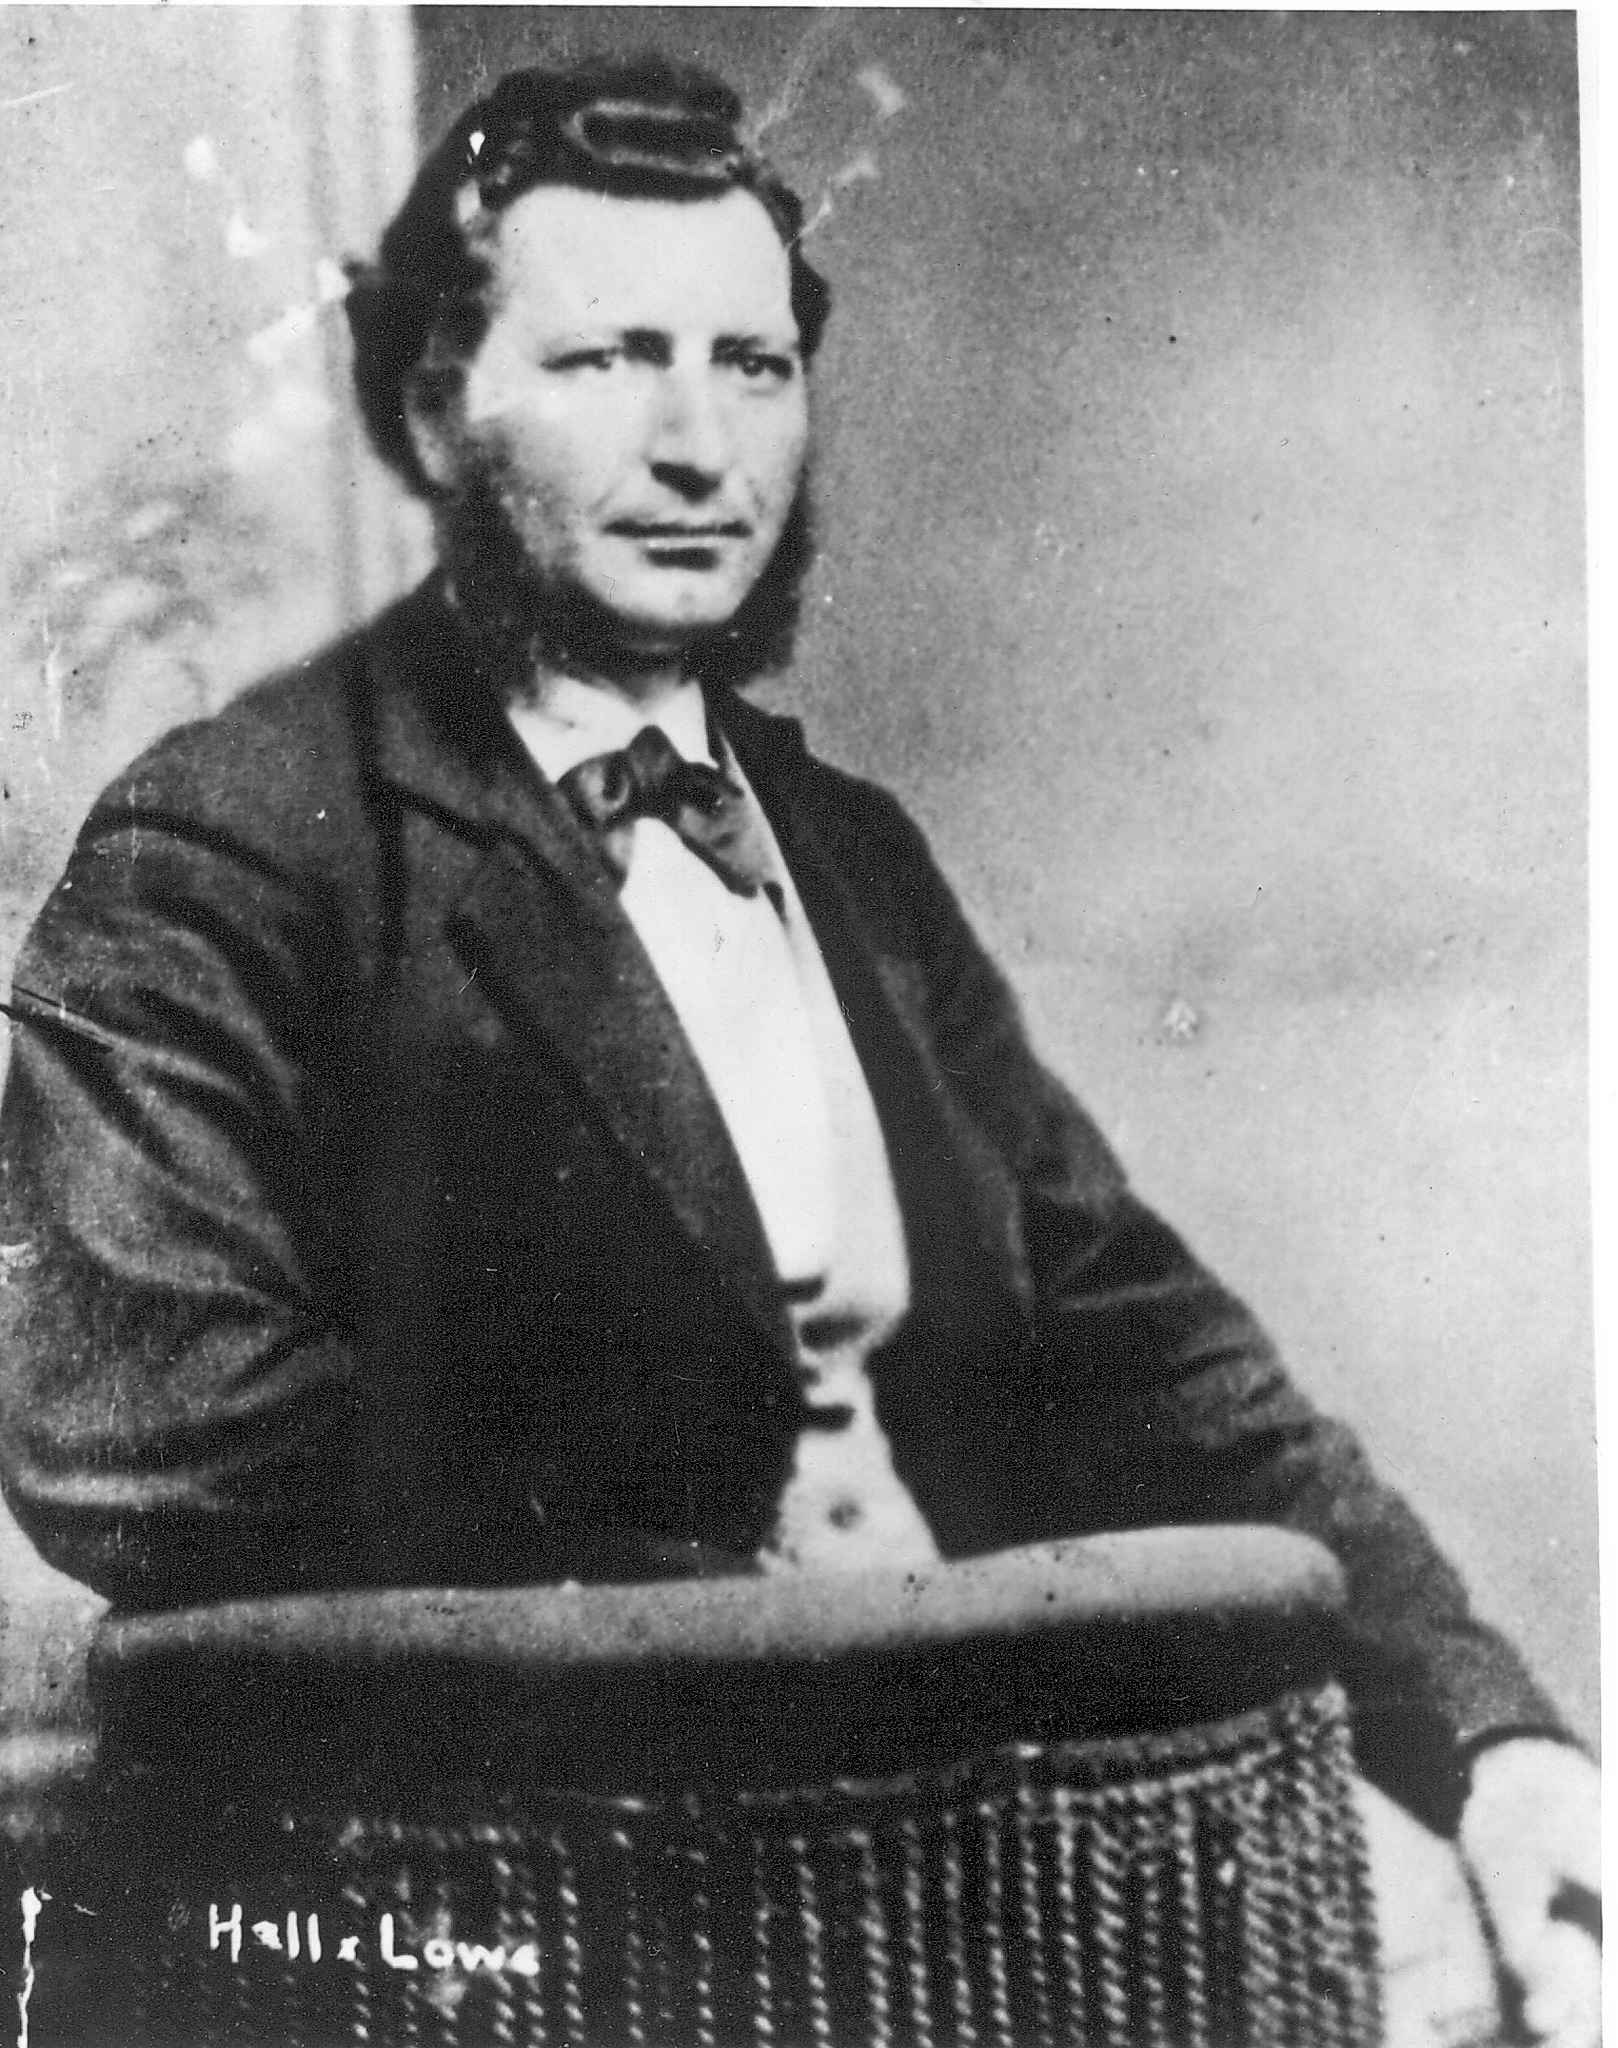 Louis Riel was only 25 years old at the time, but highly educated and bilingual after studying for the priesthood in Montreal as a teen and a young man.